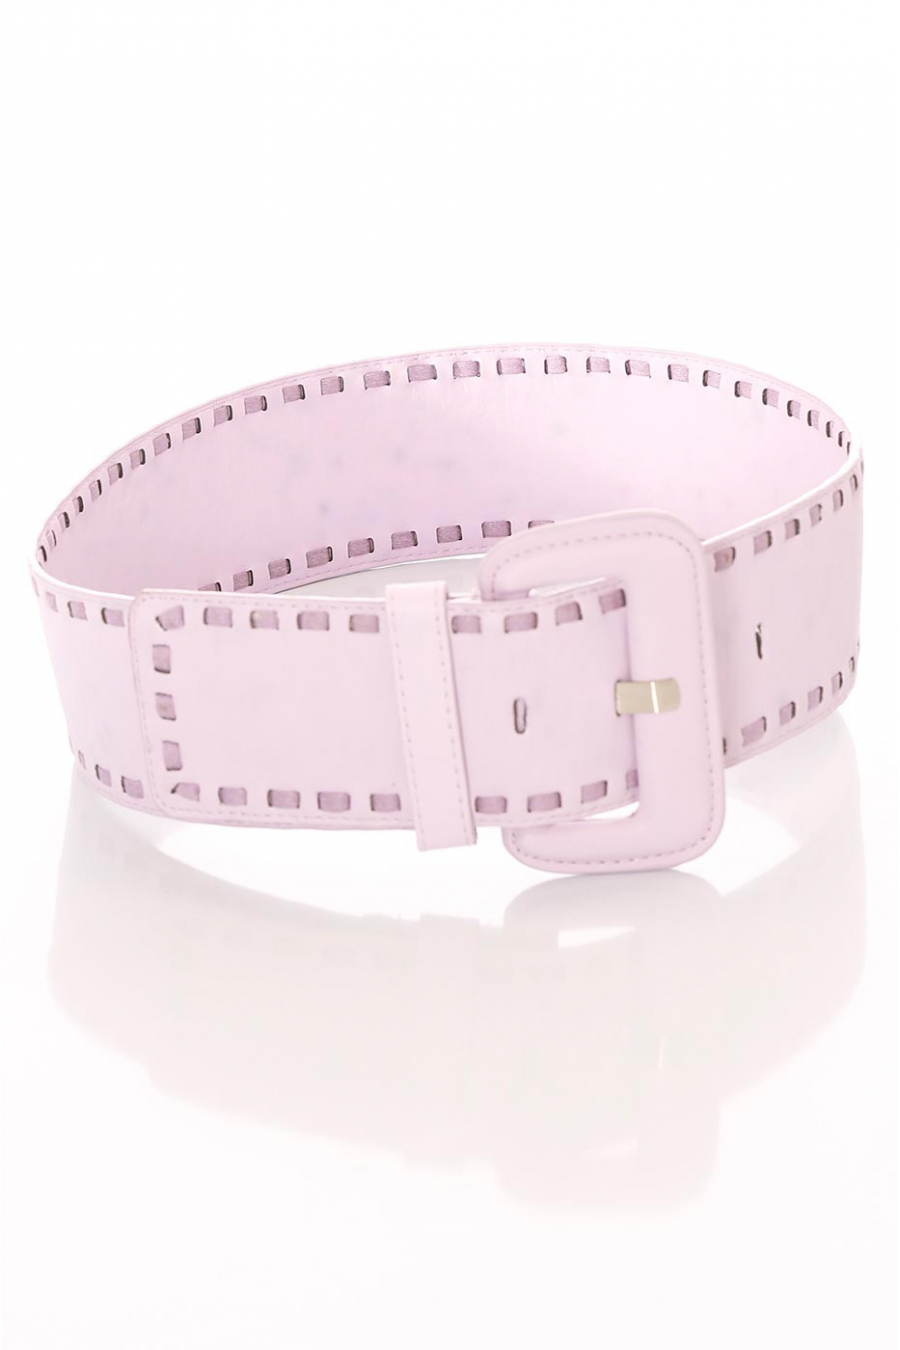 Large purple belt, rectangle buckle and sewn contours. SG-0460